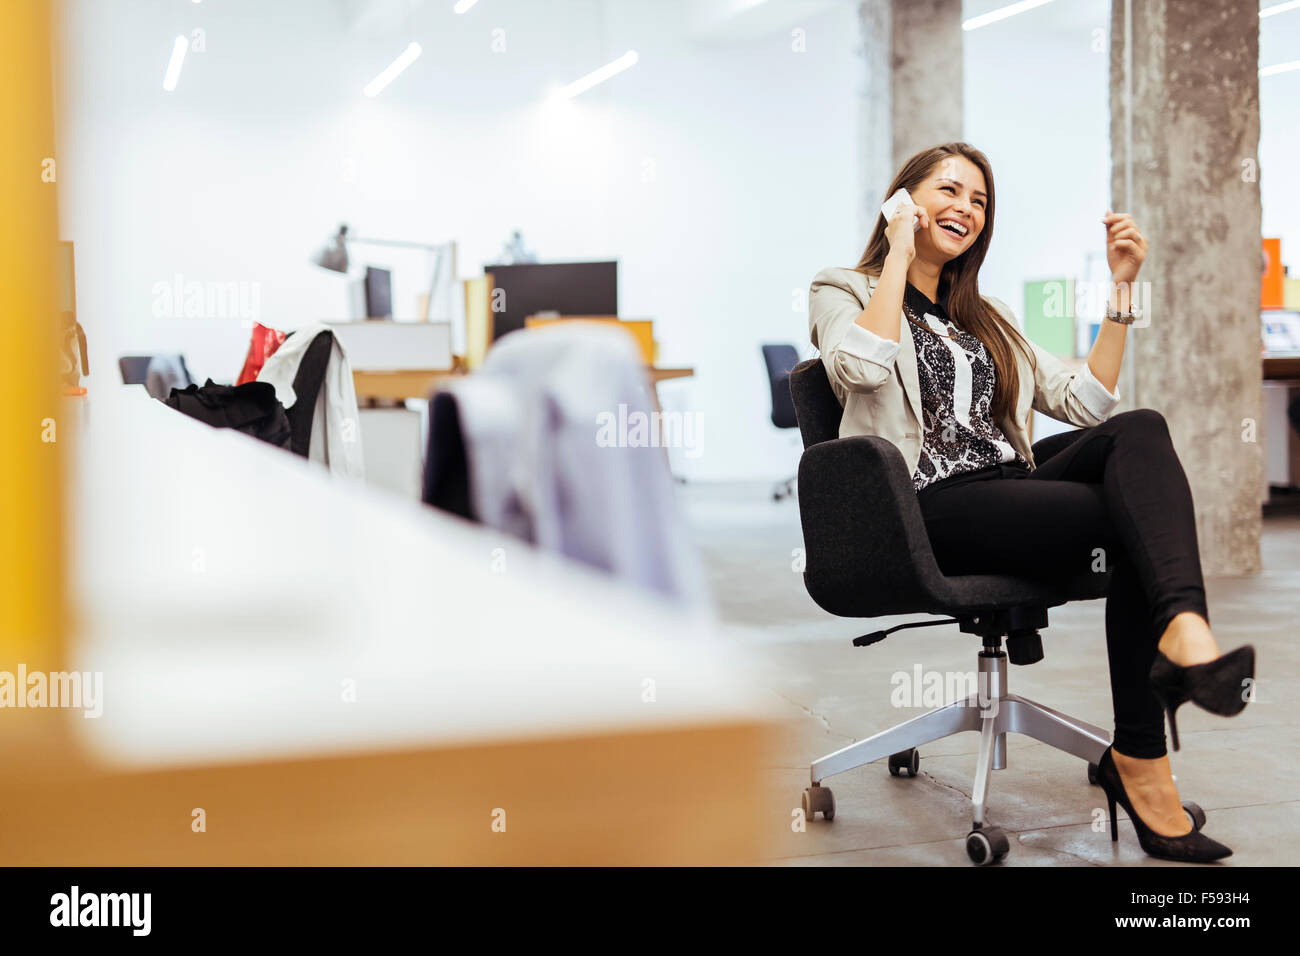 Confident business woman using phone in an office - Stock Image